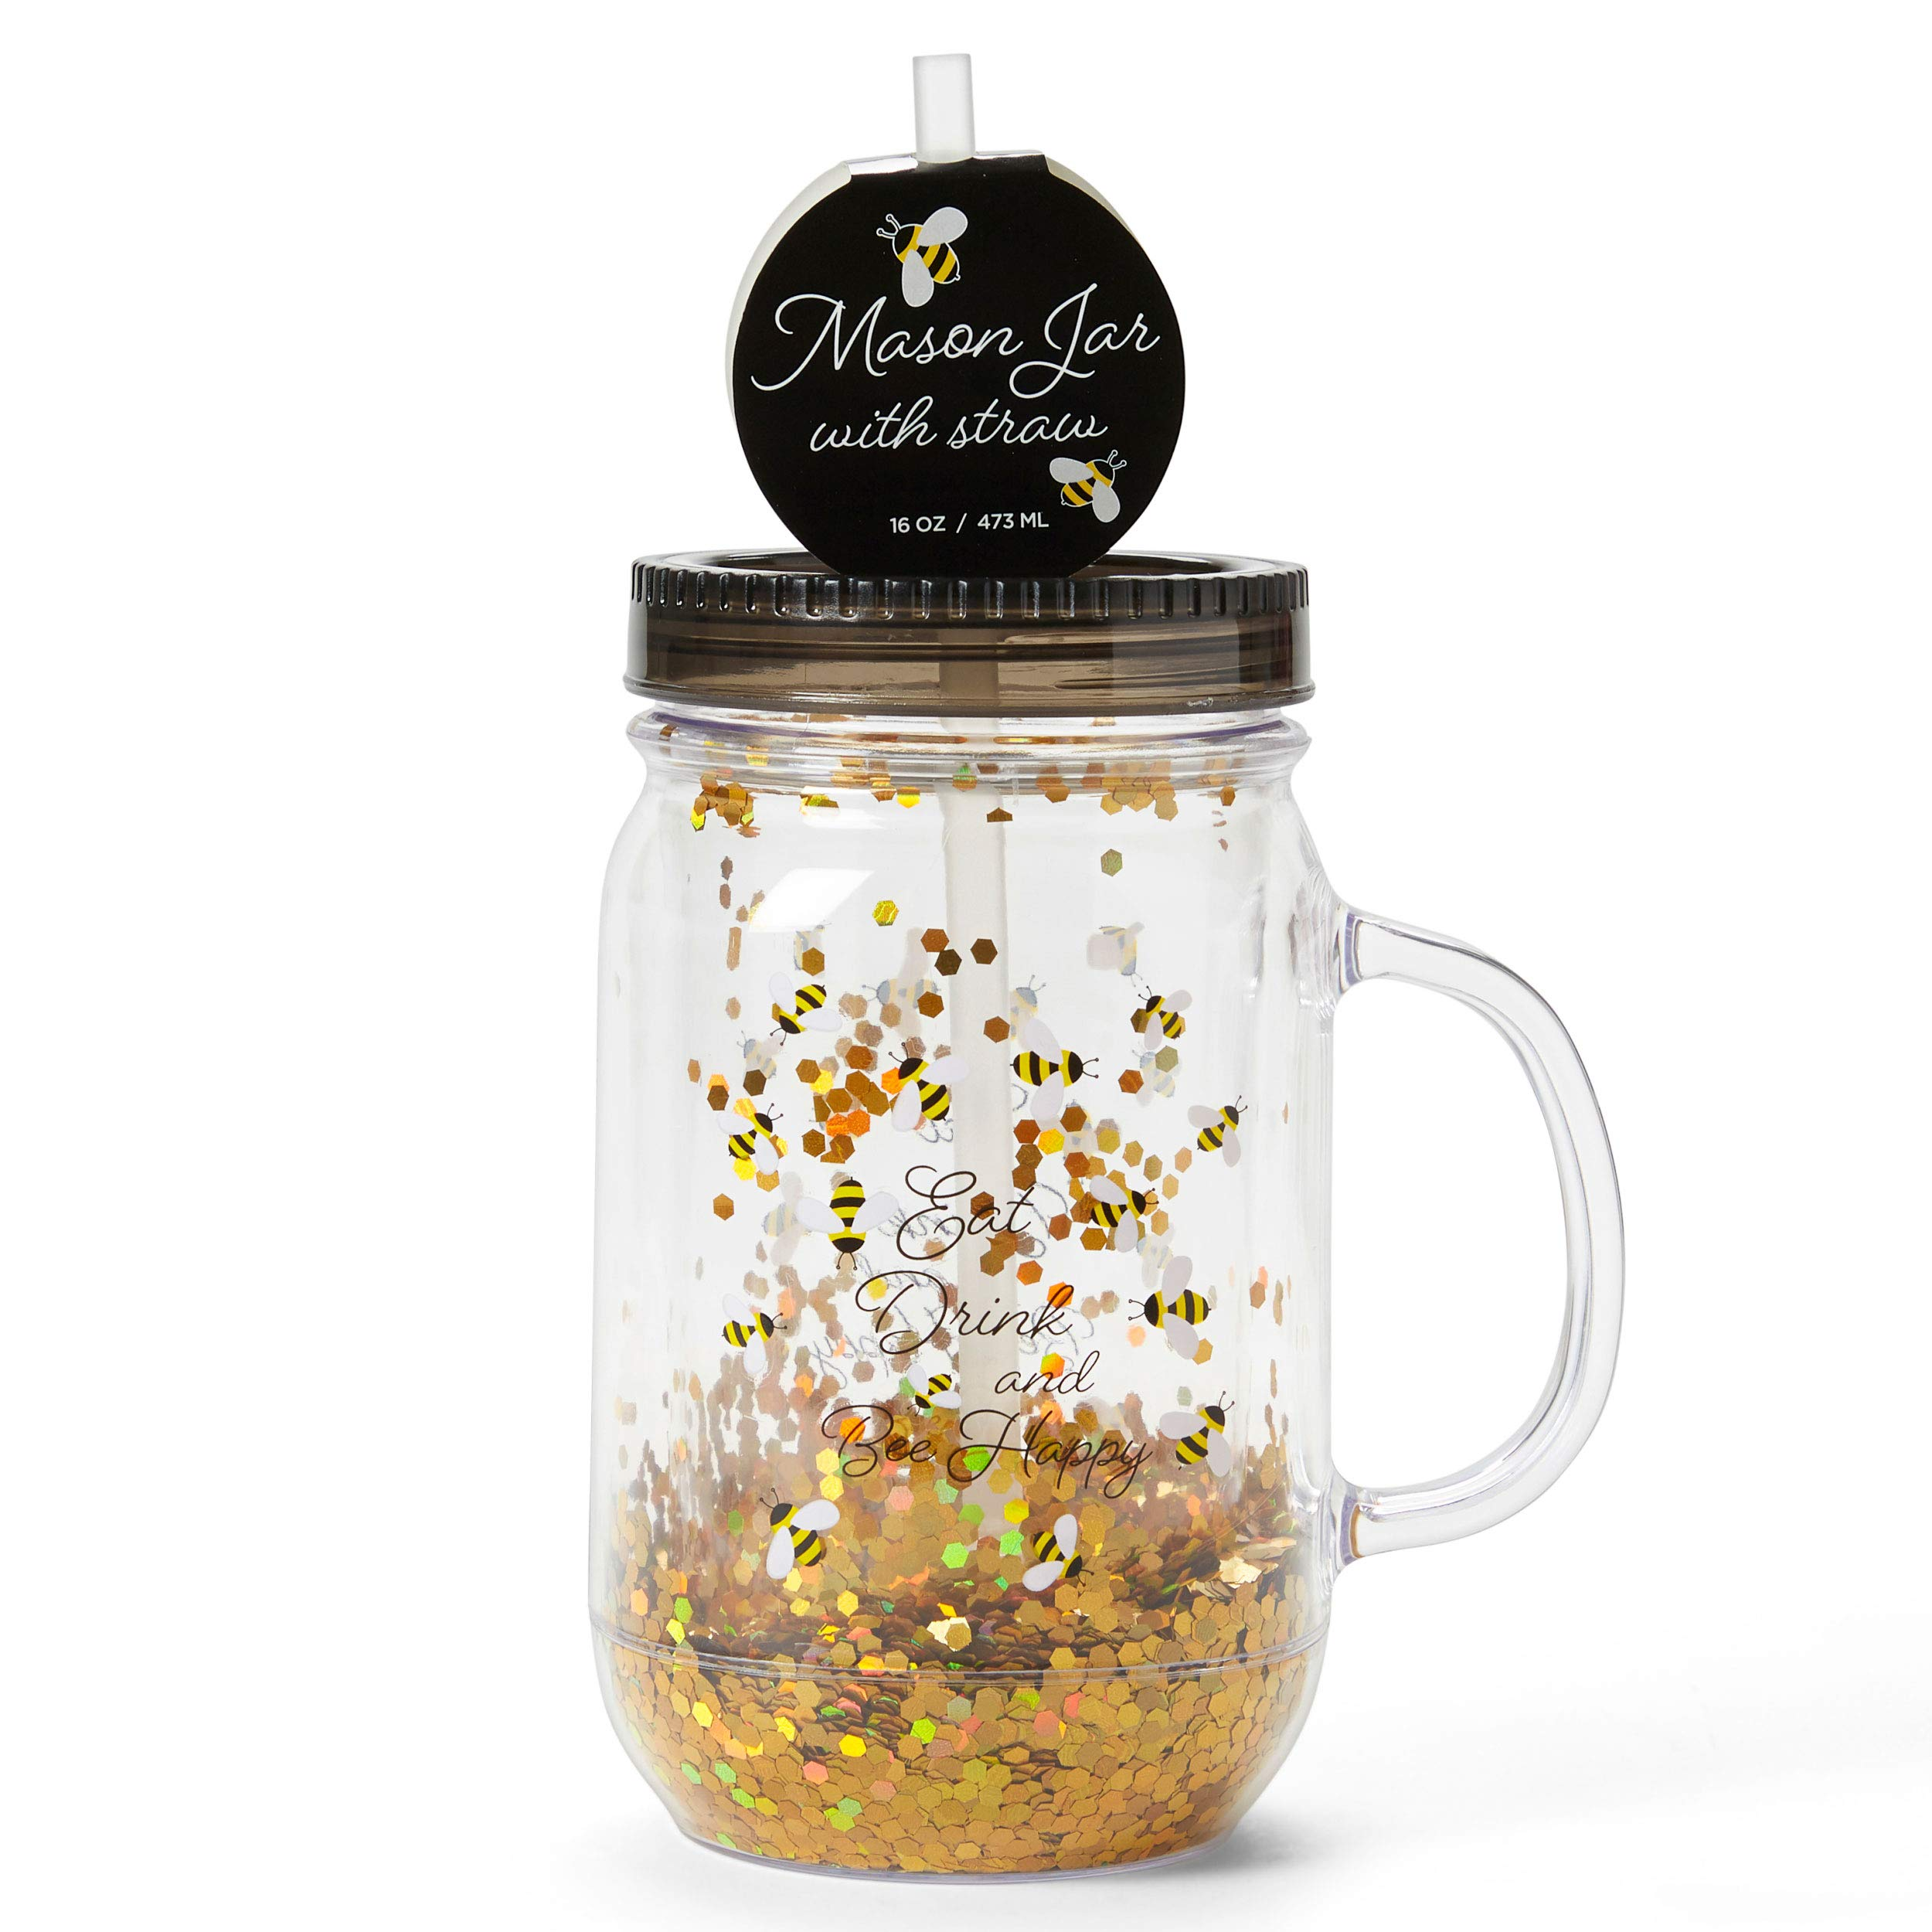 Plastic Mason Jar Cup Large Break Resistant Bpa Free To Go Mug With Lid Straw And Handle Perfect As Party Cup Kids Travel Mug With Fun Saying And Sparkly Glitter